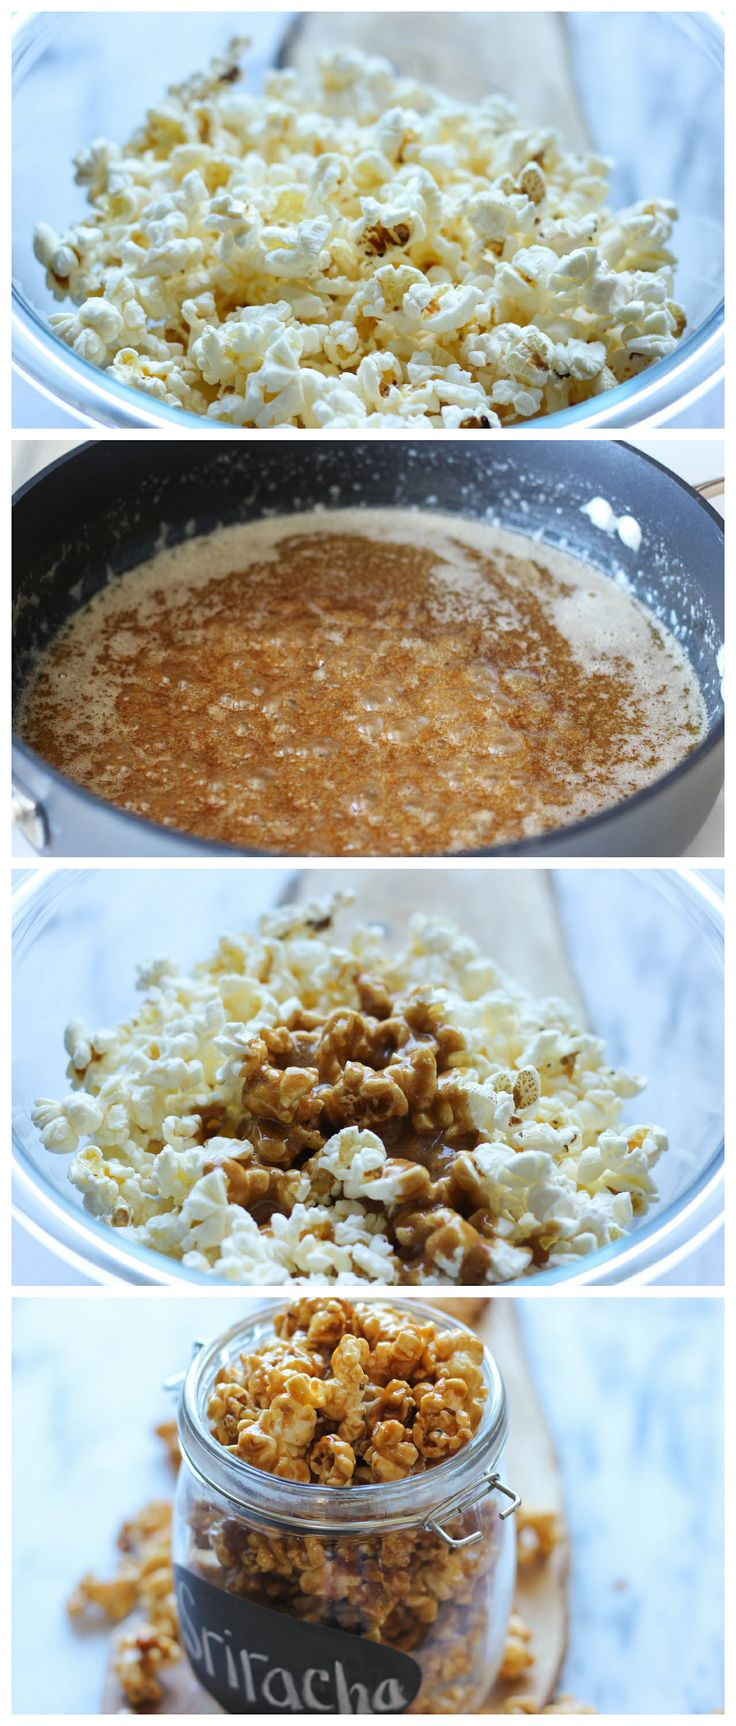 Sriracha Caramel Corn - This is the perfect balance of crunchy, sweet, caramel perfection with a wonderful kick of subtle heat! And it's so easy to make too!